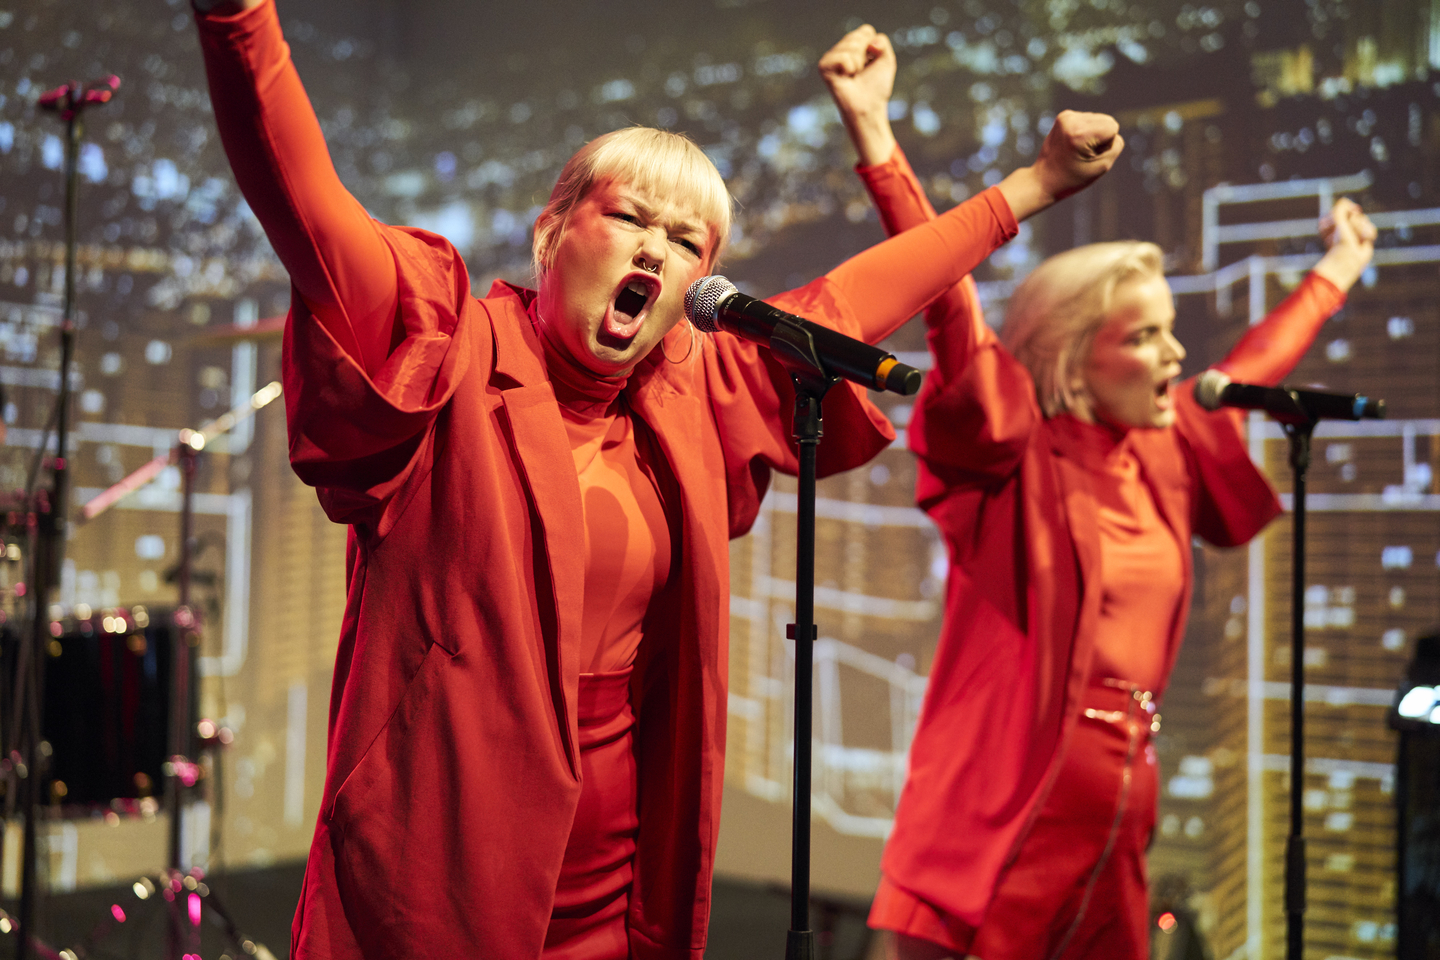 The Magnettes at the opening party. Photo by Richard Pflaume/Daimler AG